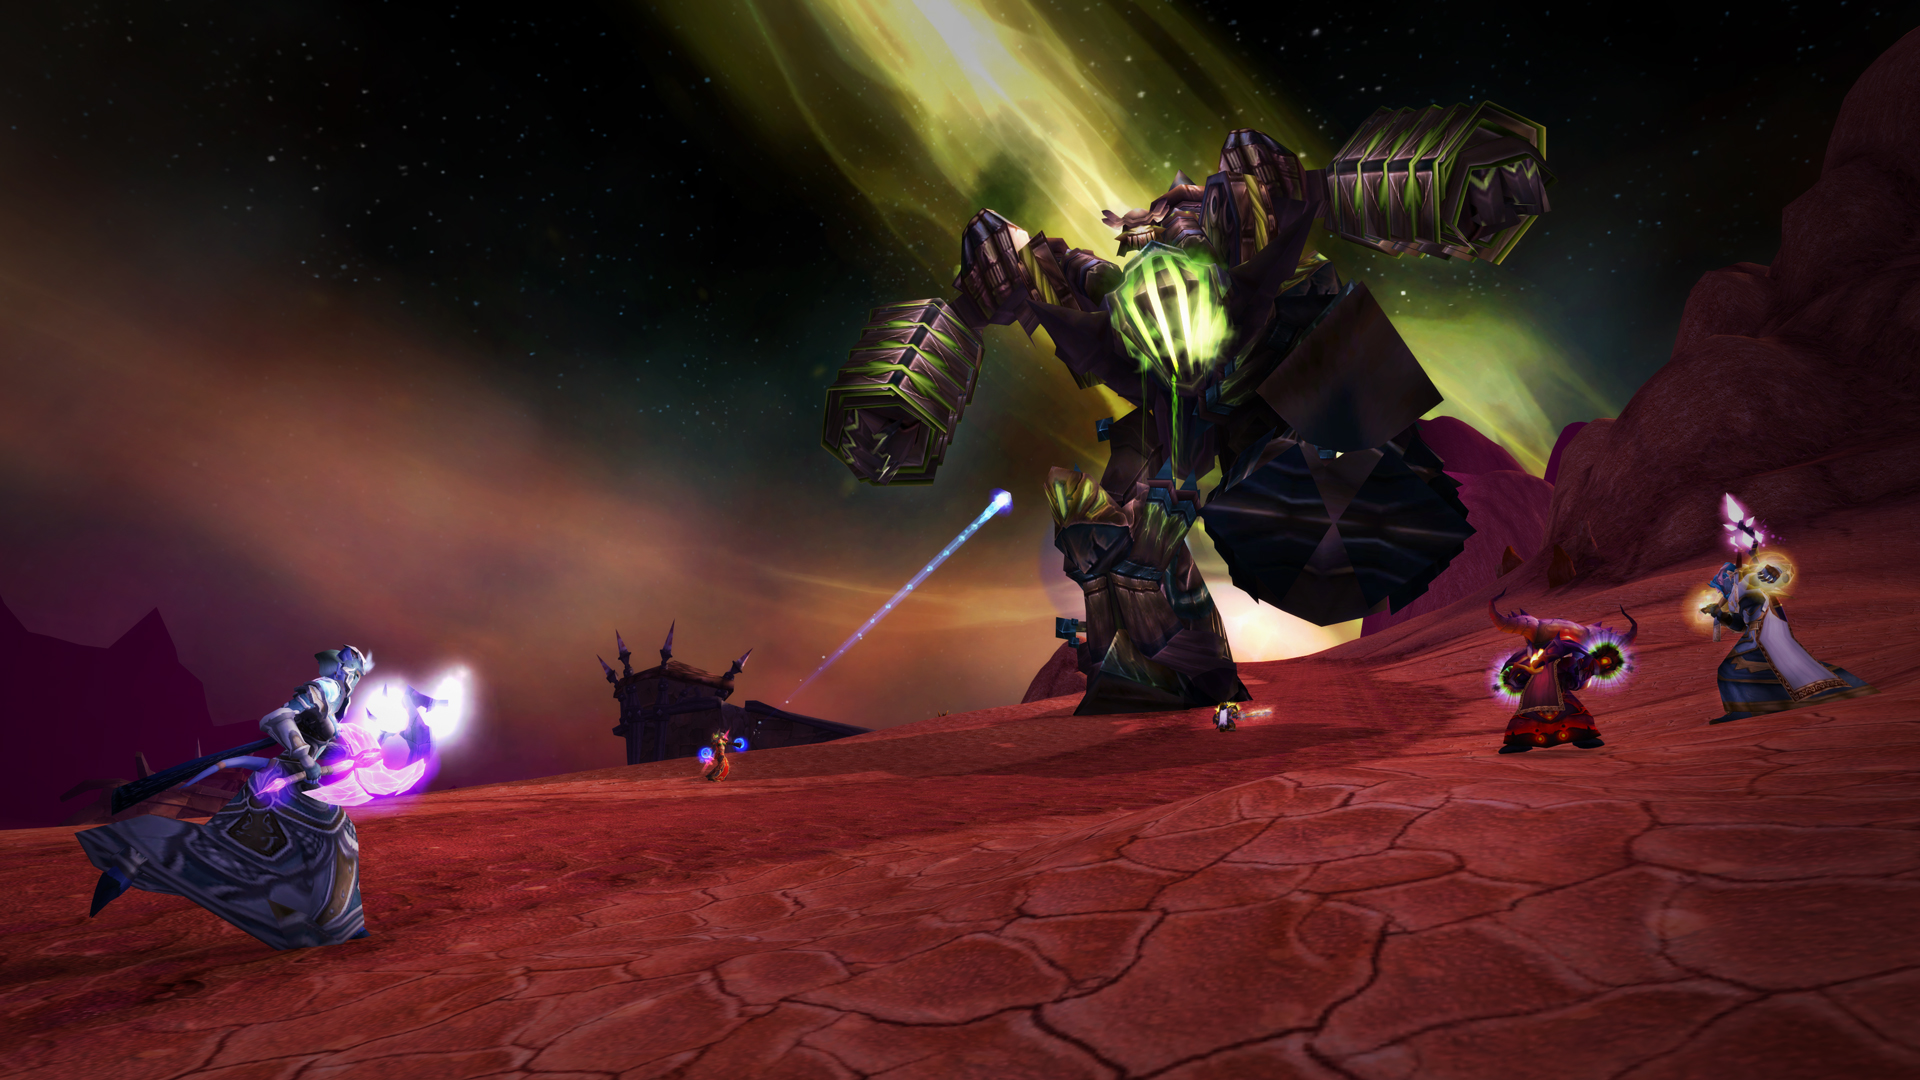 Fel Reaver Being Attacked By Players